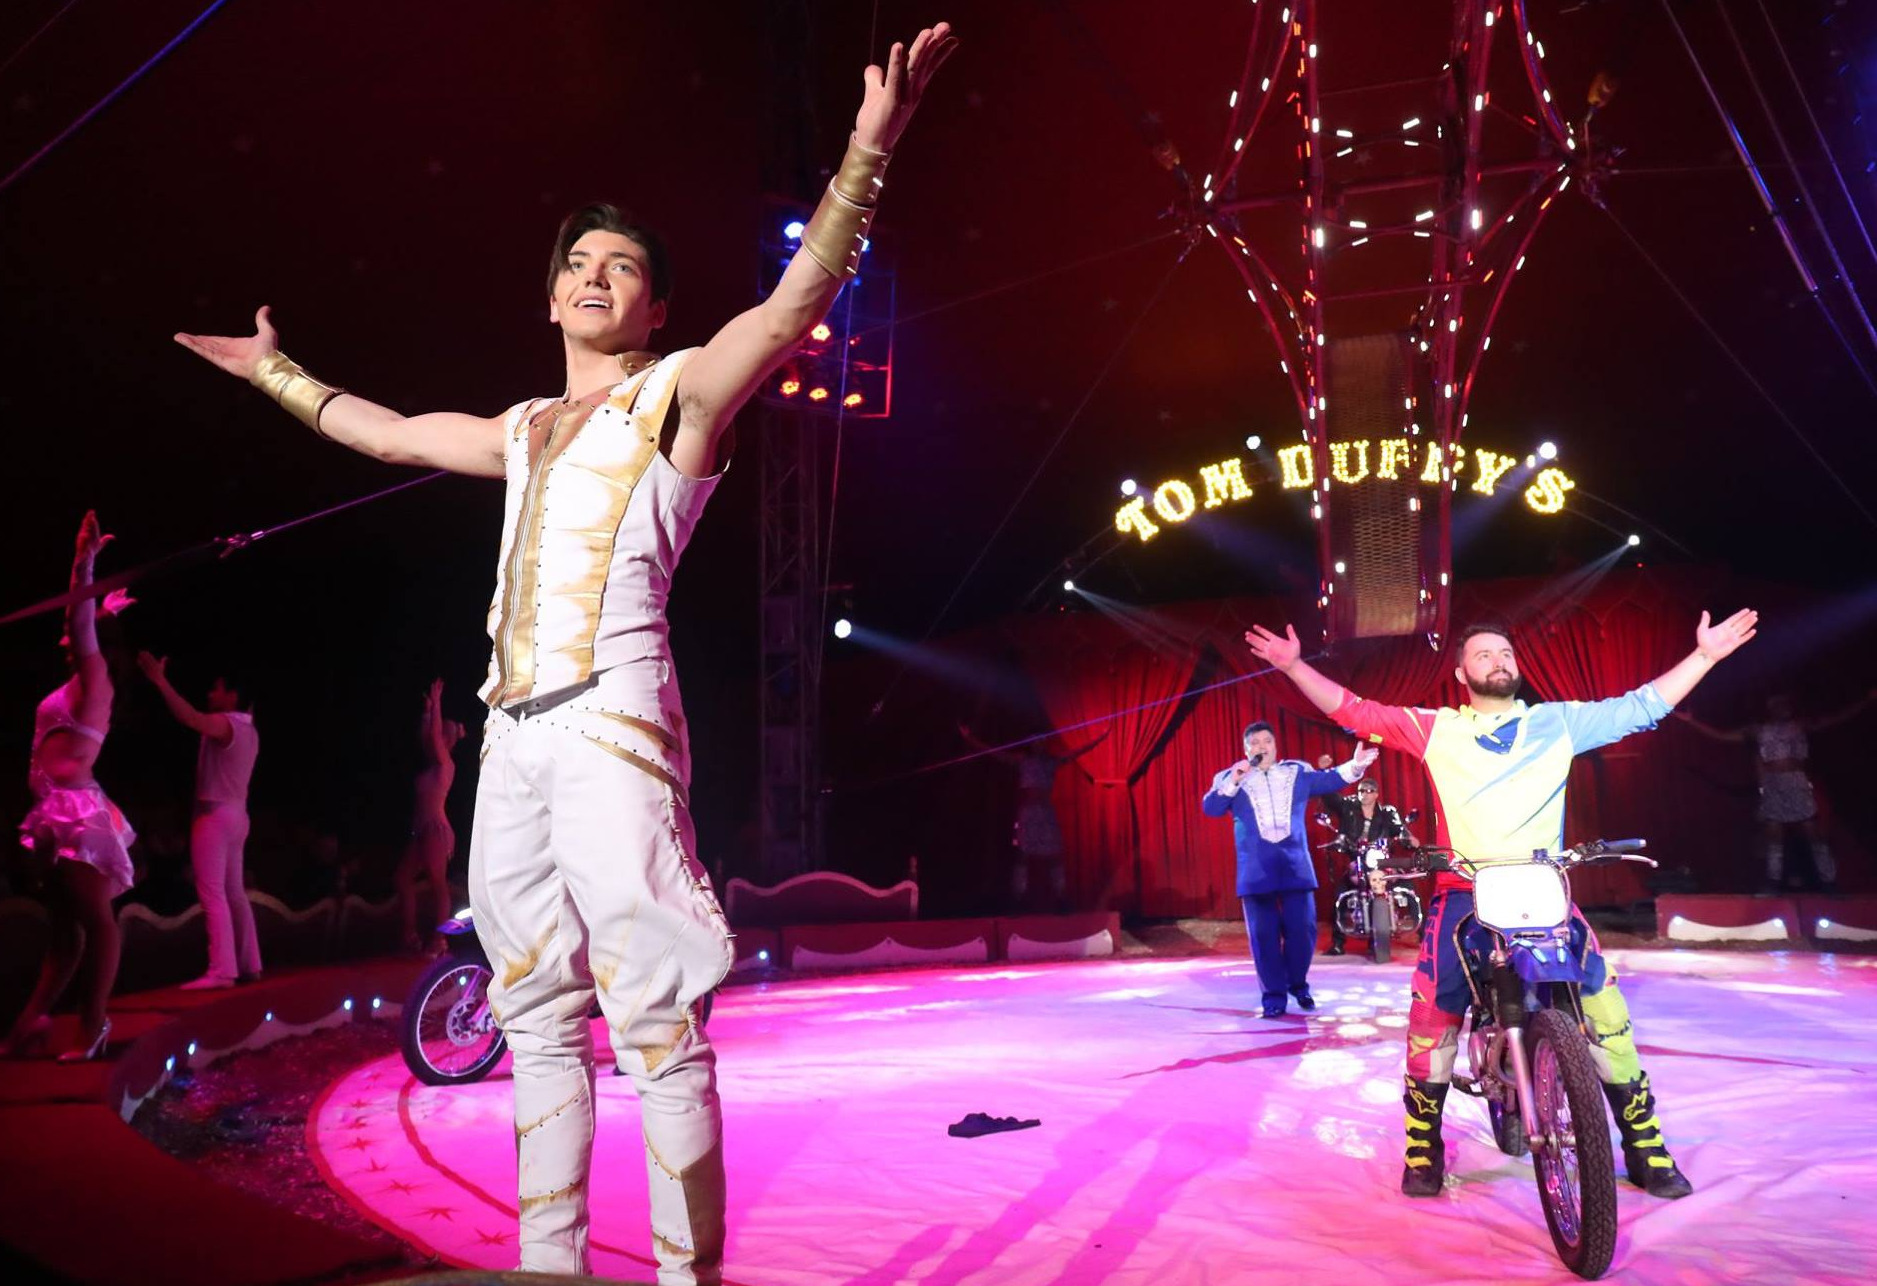 Tom Duffy's Circus - YourDaysOut